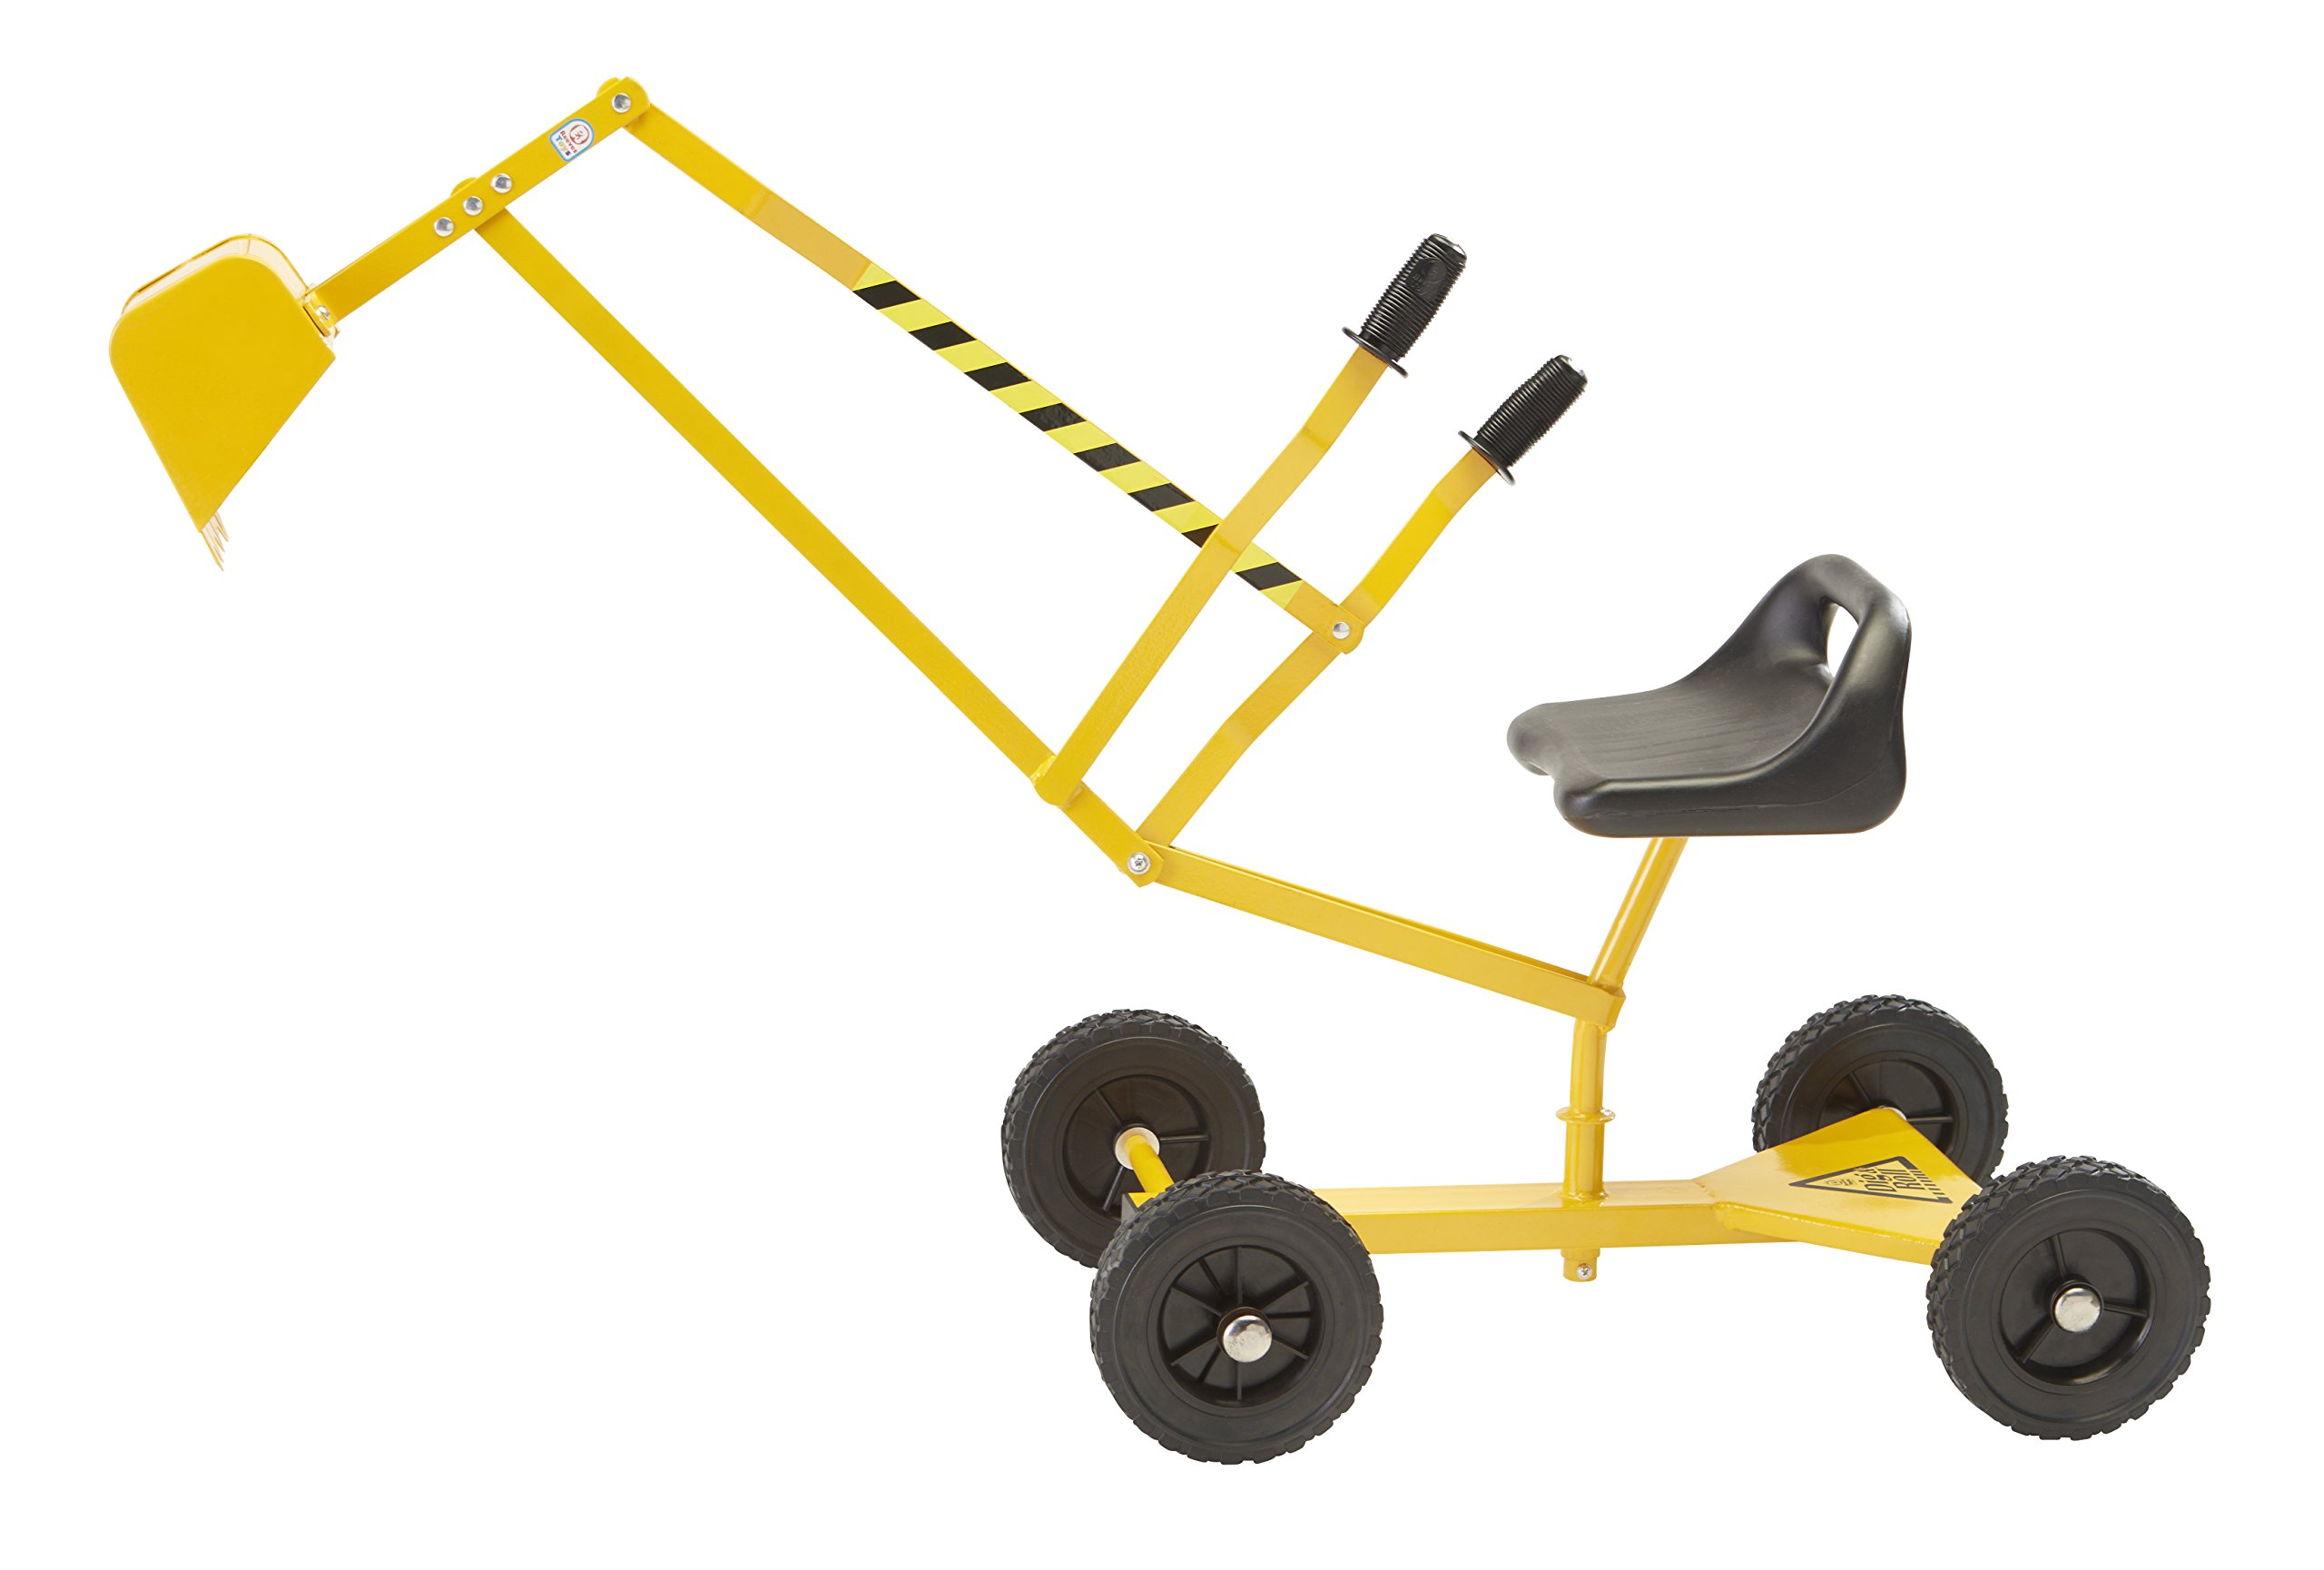 Reeves International The Big Dig and Roll Ride-On Working Excavator with Wheels, Excavator Crane with 360° Rotation, Great for Sand, Dirt and Snow, Steel Outdoor Play Toy by Reeves International